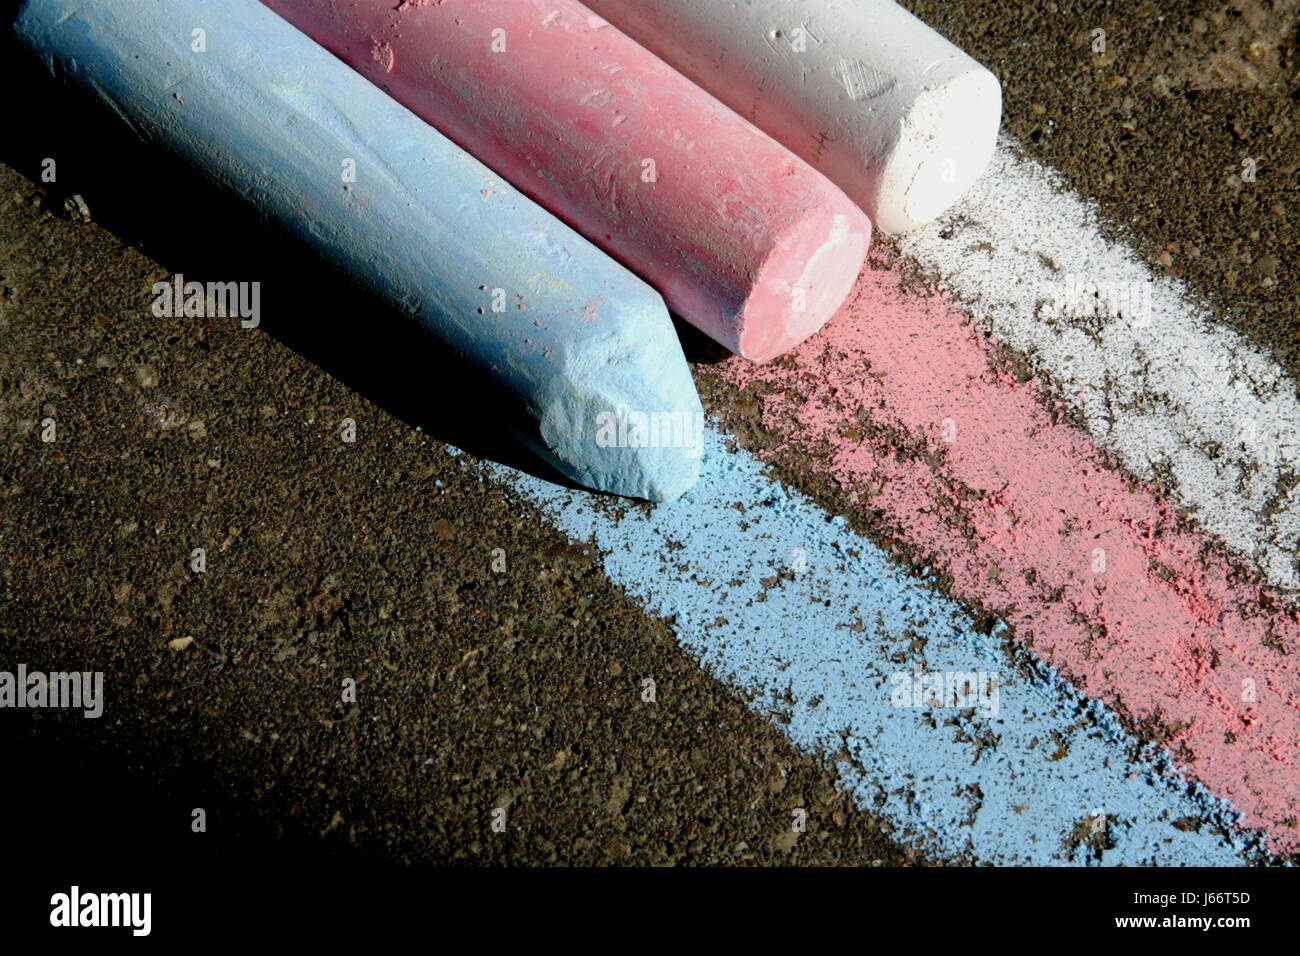 Three color chalk white,red,blue, and the pattern of stripes on the pavement. - Stock Image